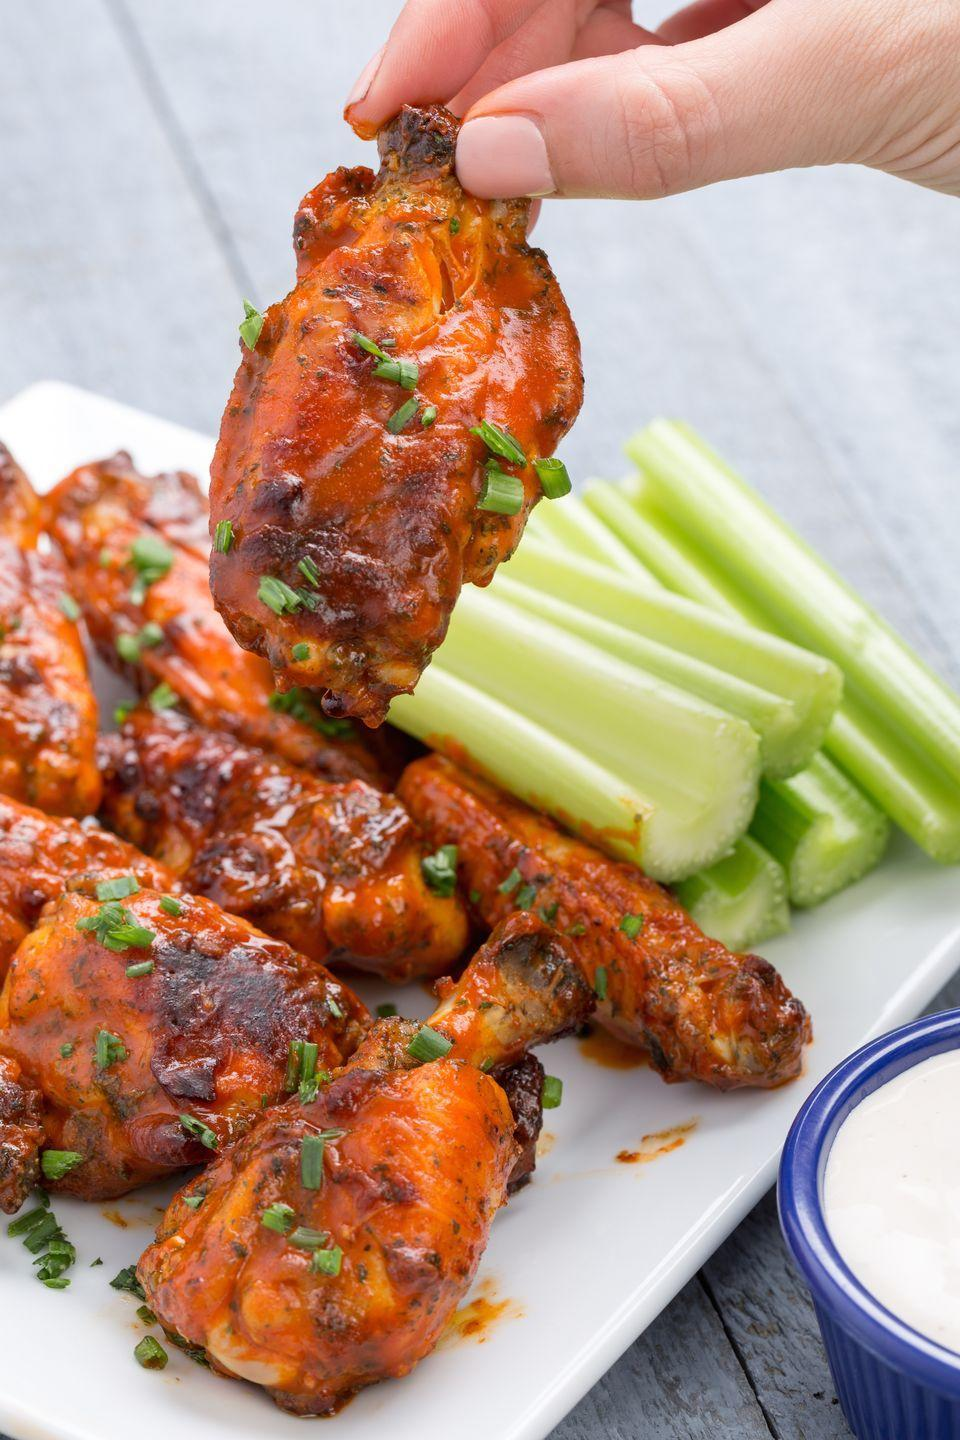 """<p>Any true football fan knows that Game Day isn't complete without buffalo ranch <em>something</em>. Put on your favorite jersey, bust out the Frank's Red Hot, and get ready to go buffalo or go home.</p><p>Get the recipe from <a href=""""https://www.delish.com/cooking/recipe-ideas/recipes/a44367/slow-cooker-buffalo-ranch-wings-recipe/"""" rel=""""nofollow noopener"""" target=""""_blank"""" data-ylk=""""slk:Delish"""" class=""""link rapid-noclick-resp"""">Delish</a>. </p>"""